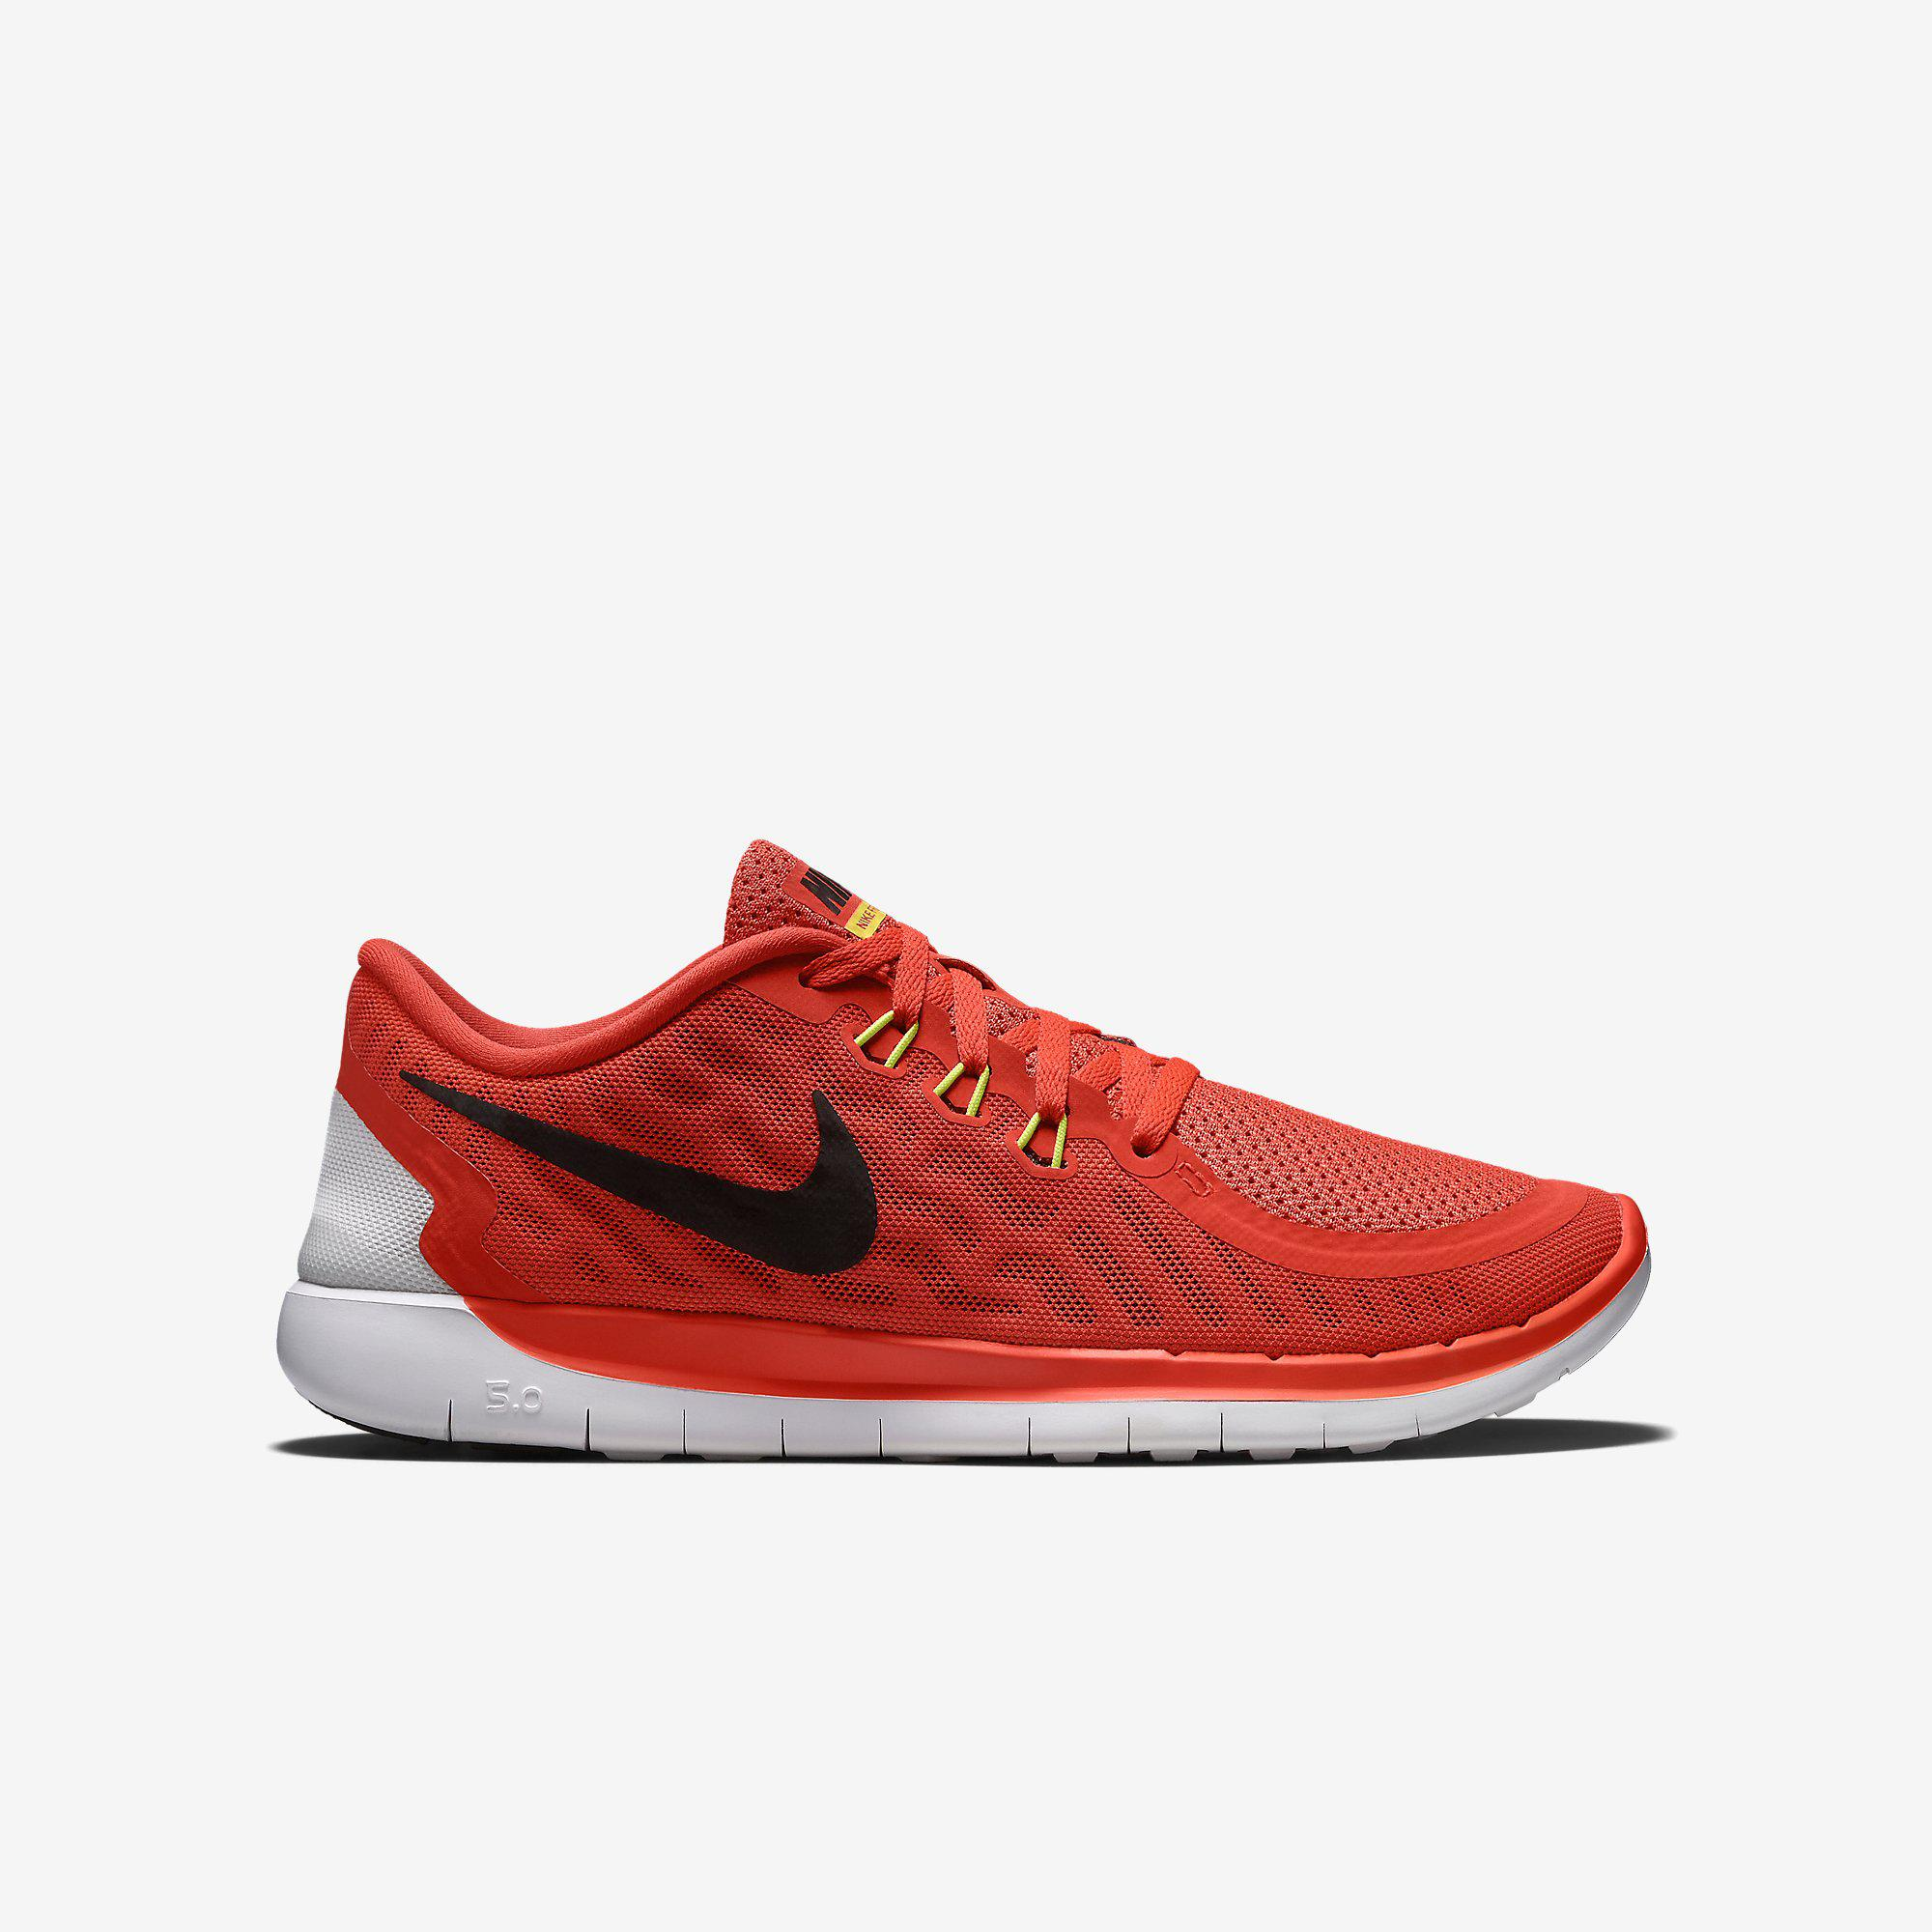 low priced 4a7ea bd047 Nike Boys Free 5.0+ Running Shoes - Bright Crimson/Total Orange